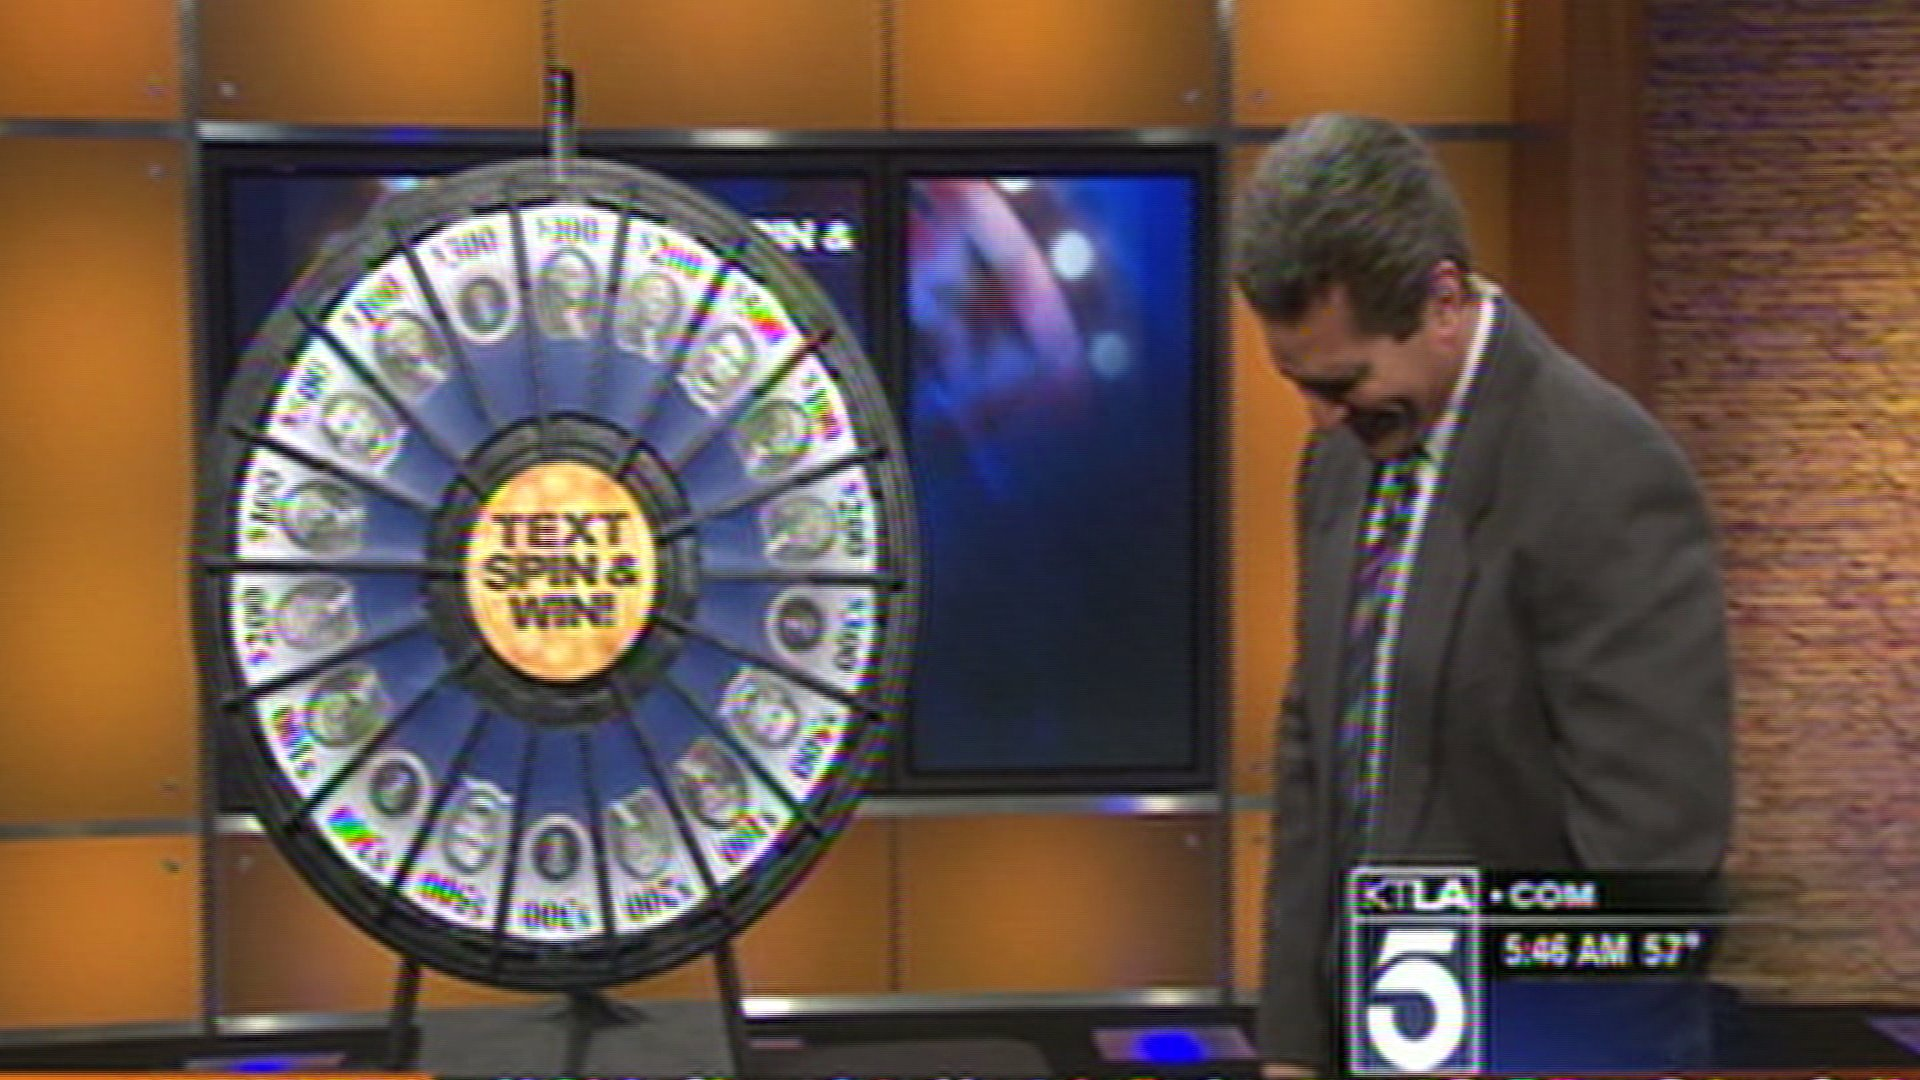 AMS Meteorologist Henry DiCarlo spins another $100, the smallest prize value on KTLA's Spin-to-Win whell. (Credit: KTLA)